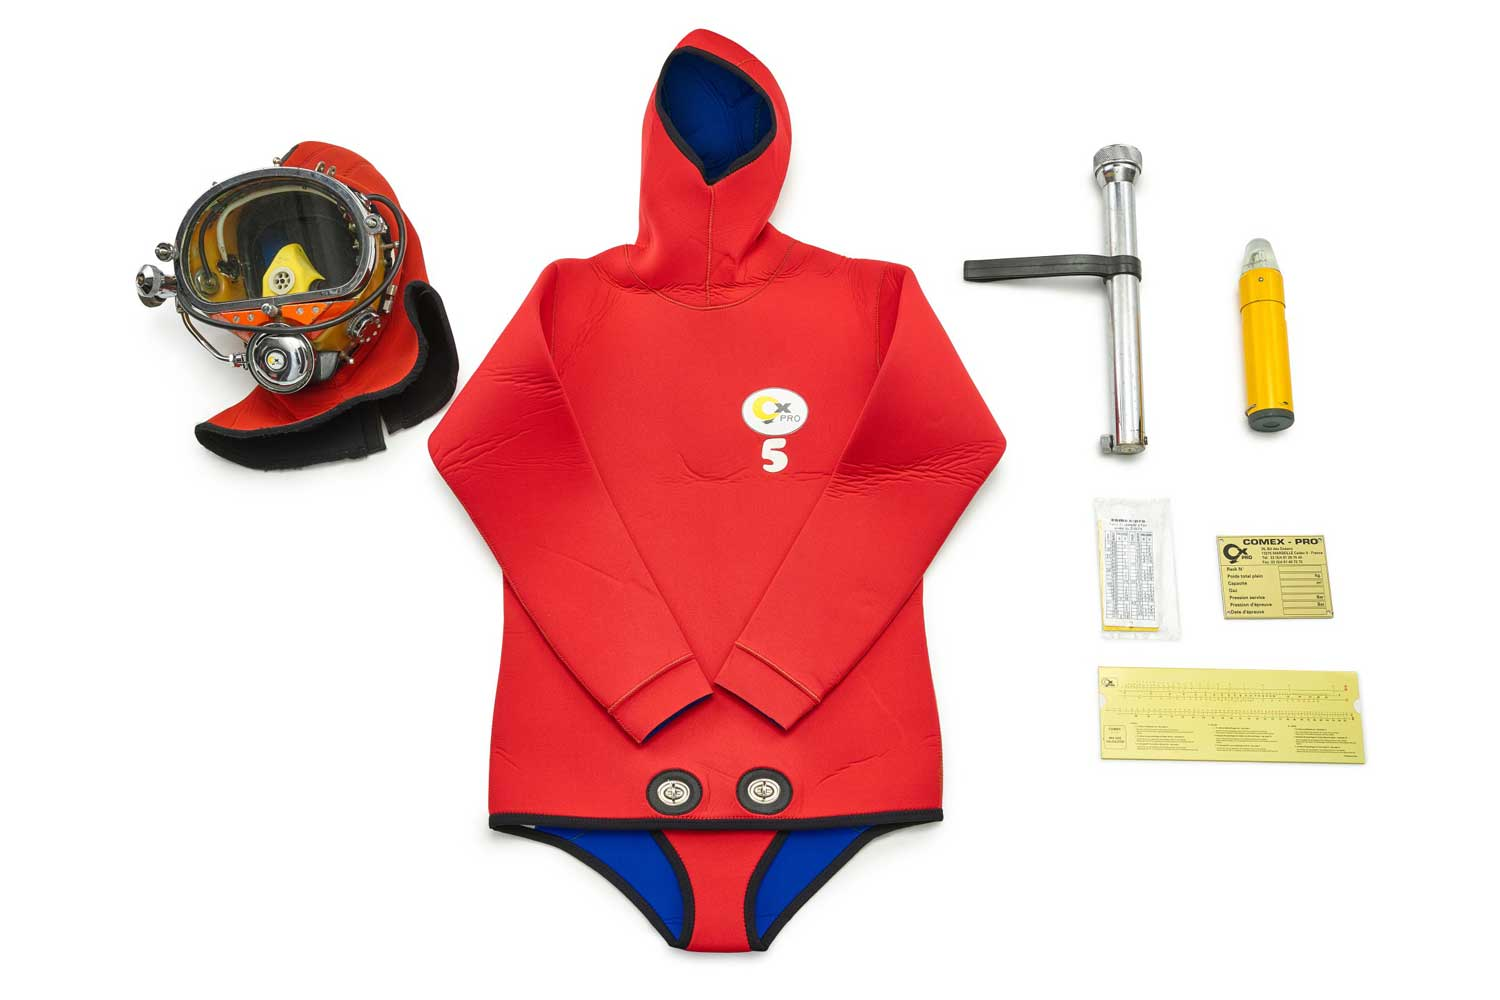 Lot 8141: COMEX - A very rare set of deepsea diving equipment, consists of a diving wet suit with intergrated hood, circa 1980; a COMEX injection molded diving mask with improved face seal, circa 1970; a heavy chrome metal diving flashlight, circa 1980 and a yello safety light, circa 1980